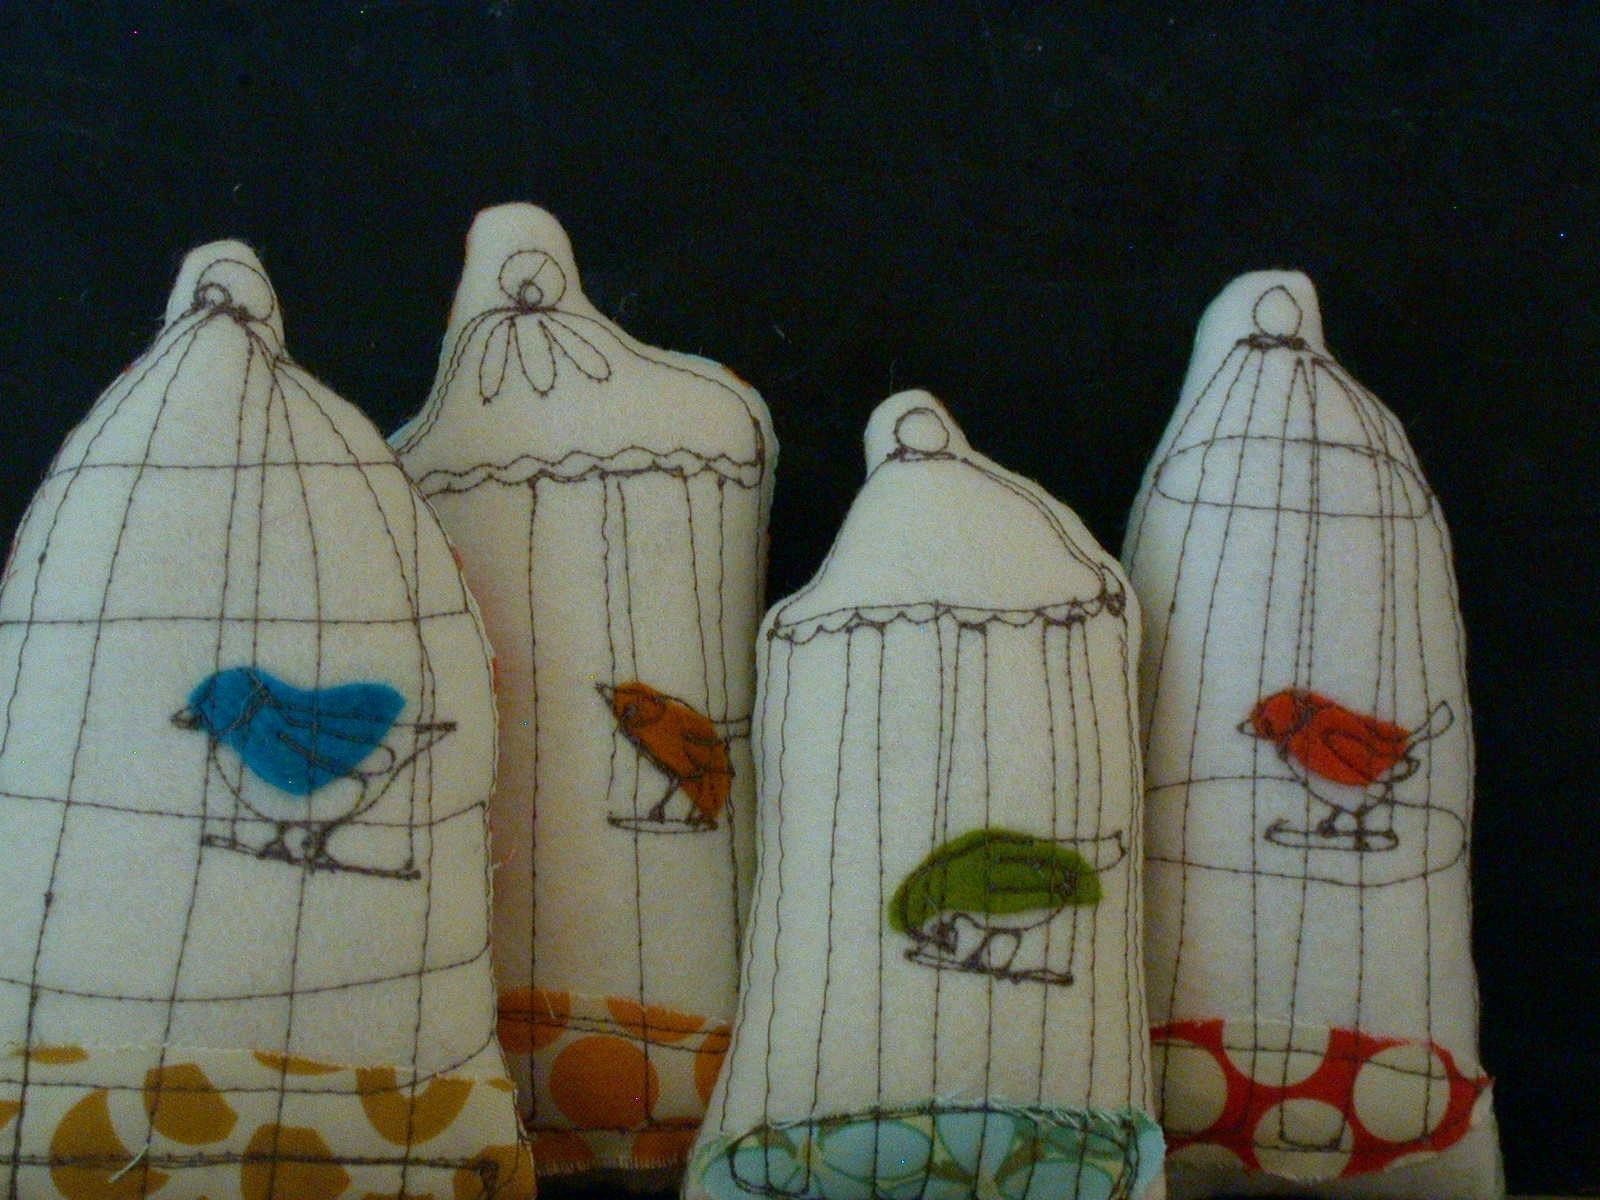 little bird cages--ornaments or decorative object